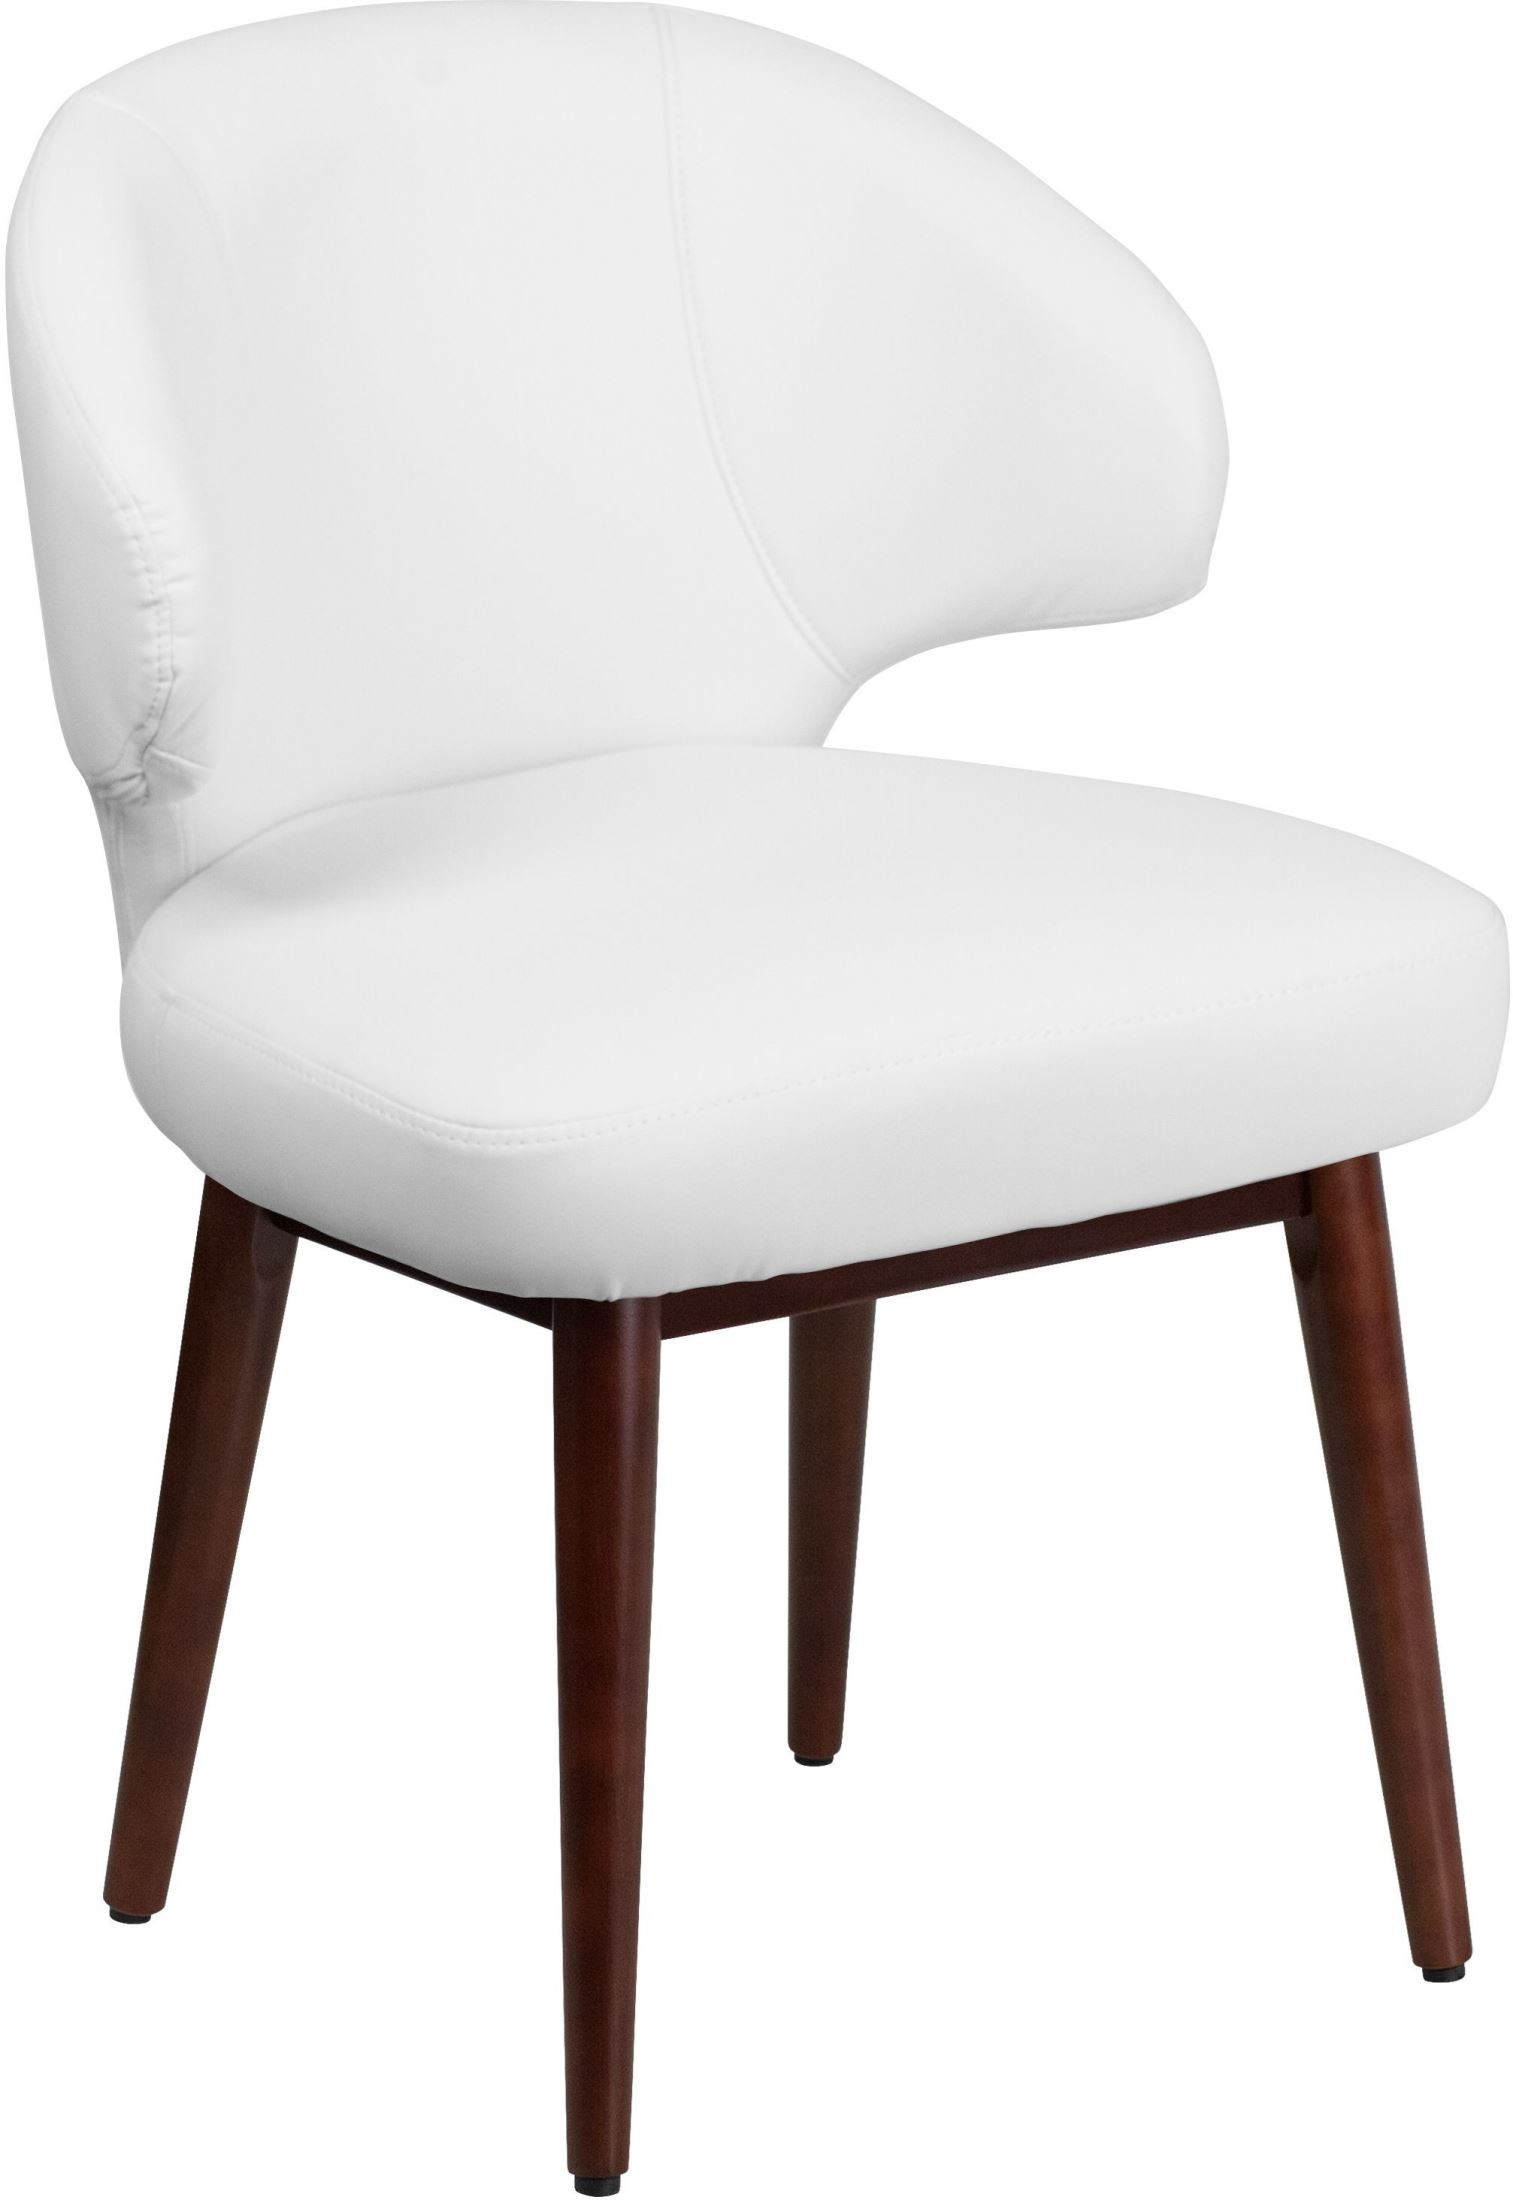 Lounge Desk Chair Comfort Back White Reception Lounge Office Chair Bt 2 Wh